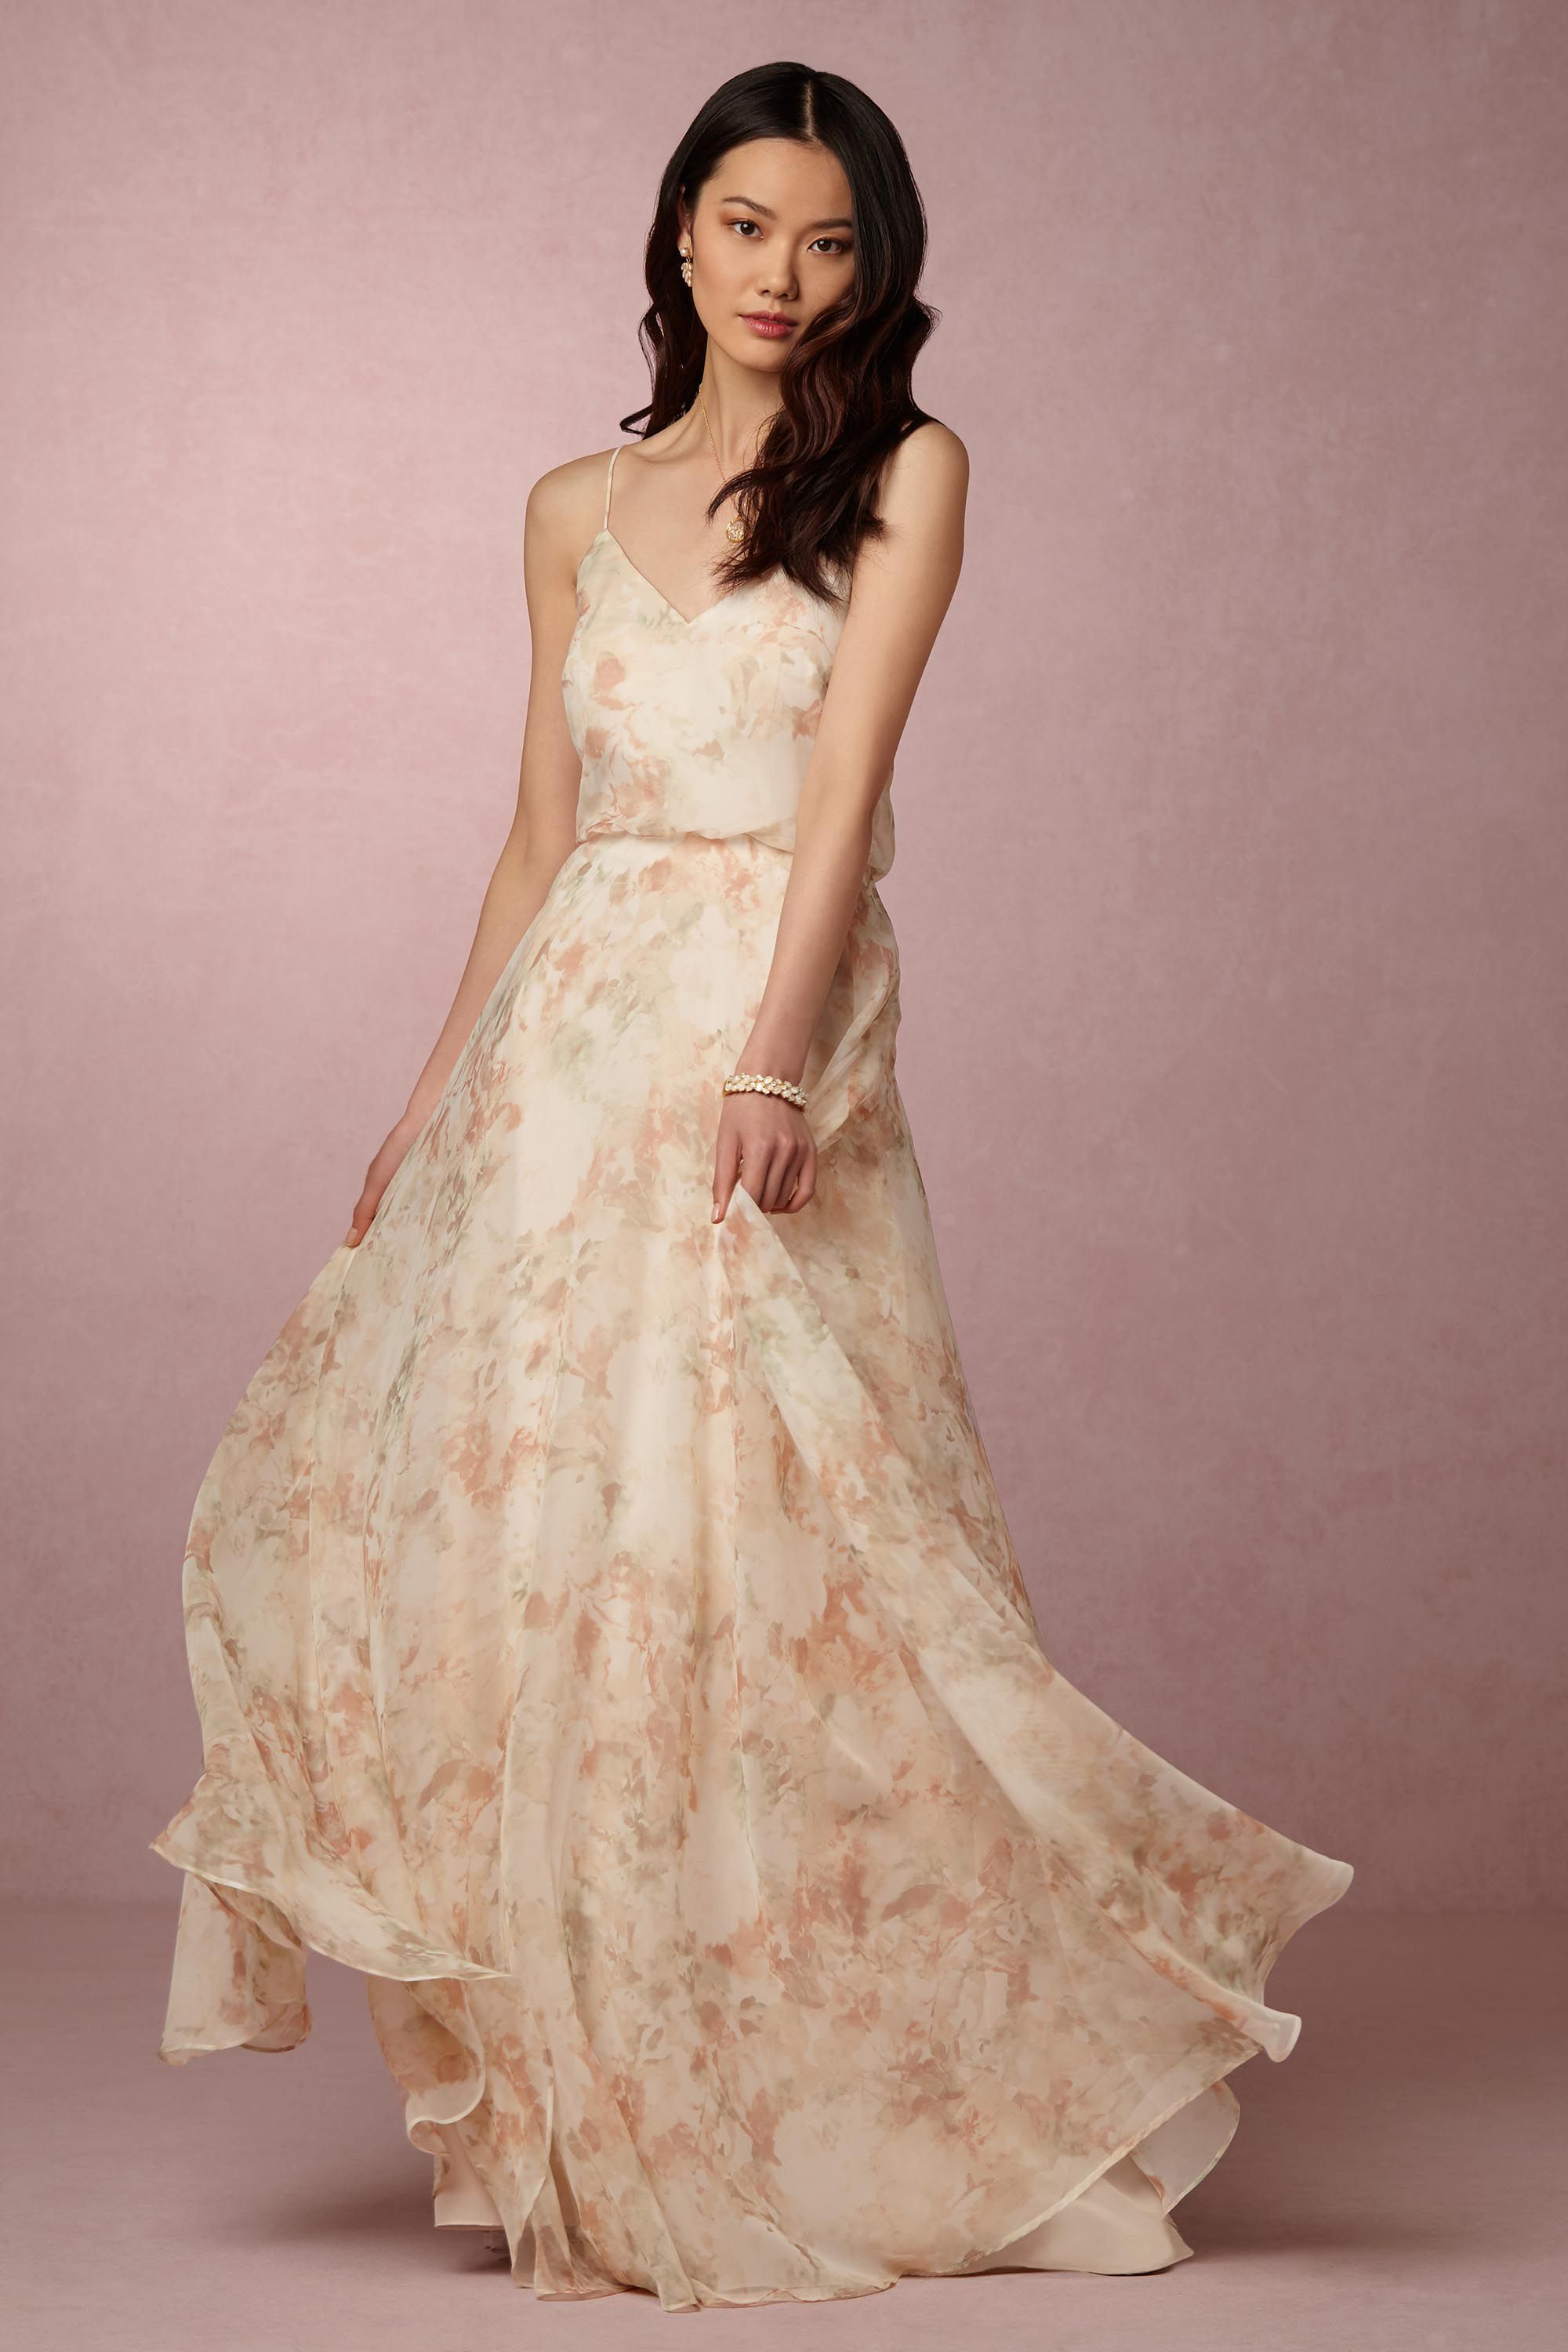 Blush floral bridesmaid dress inesse dress by jenny yoo for blush floral bridesmaid dress inesse dress by jenny yoo for bhldn ombrellifo Image collections